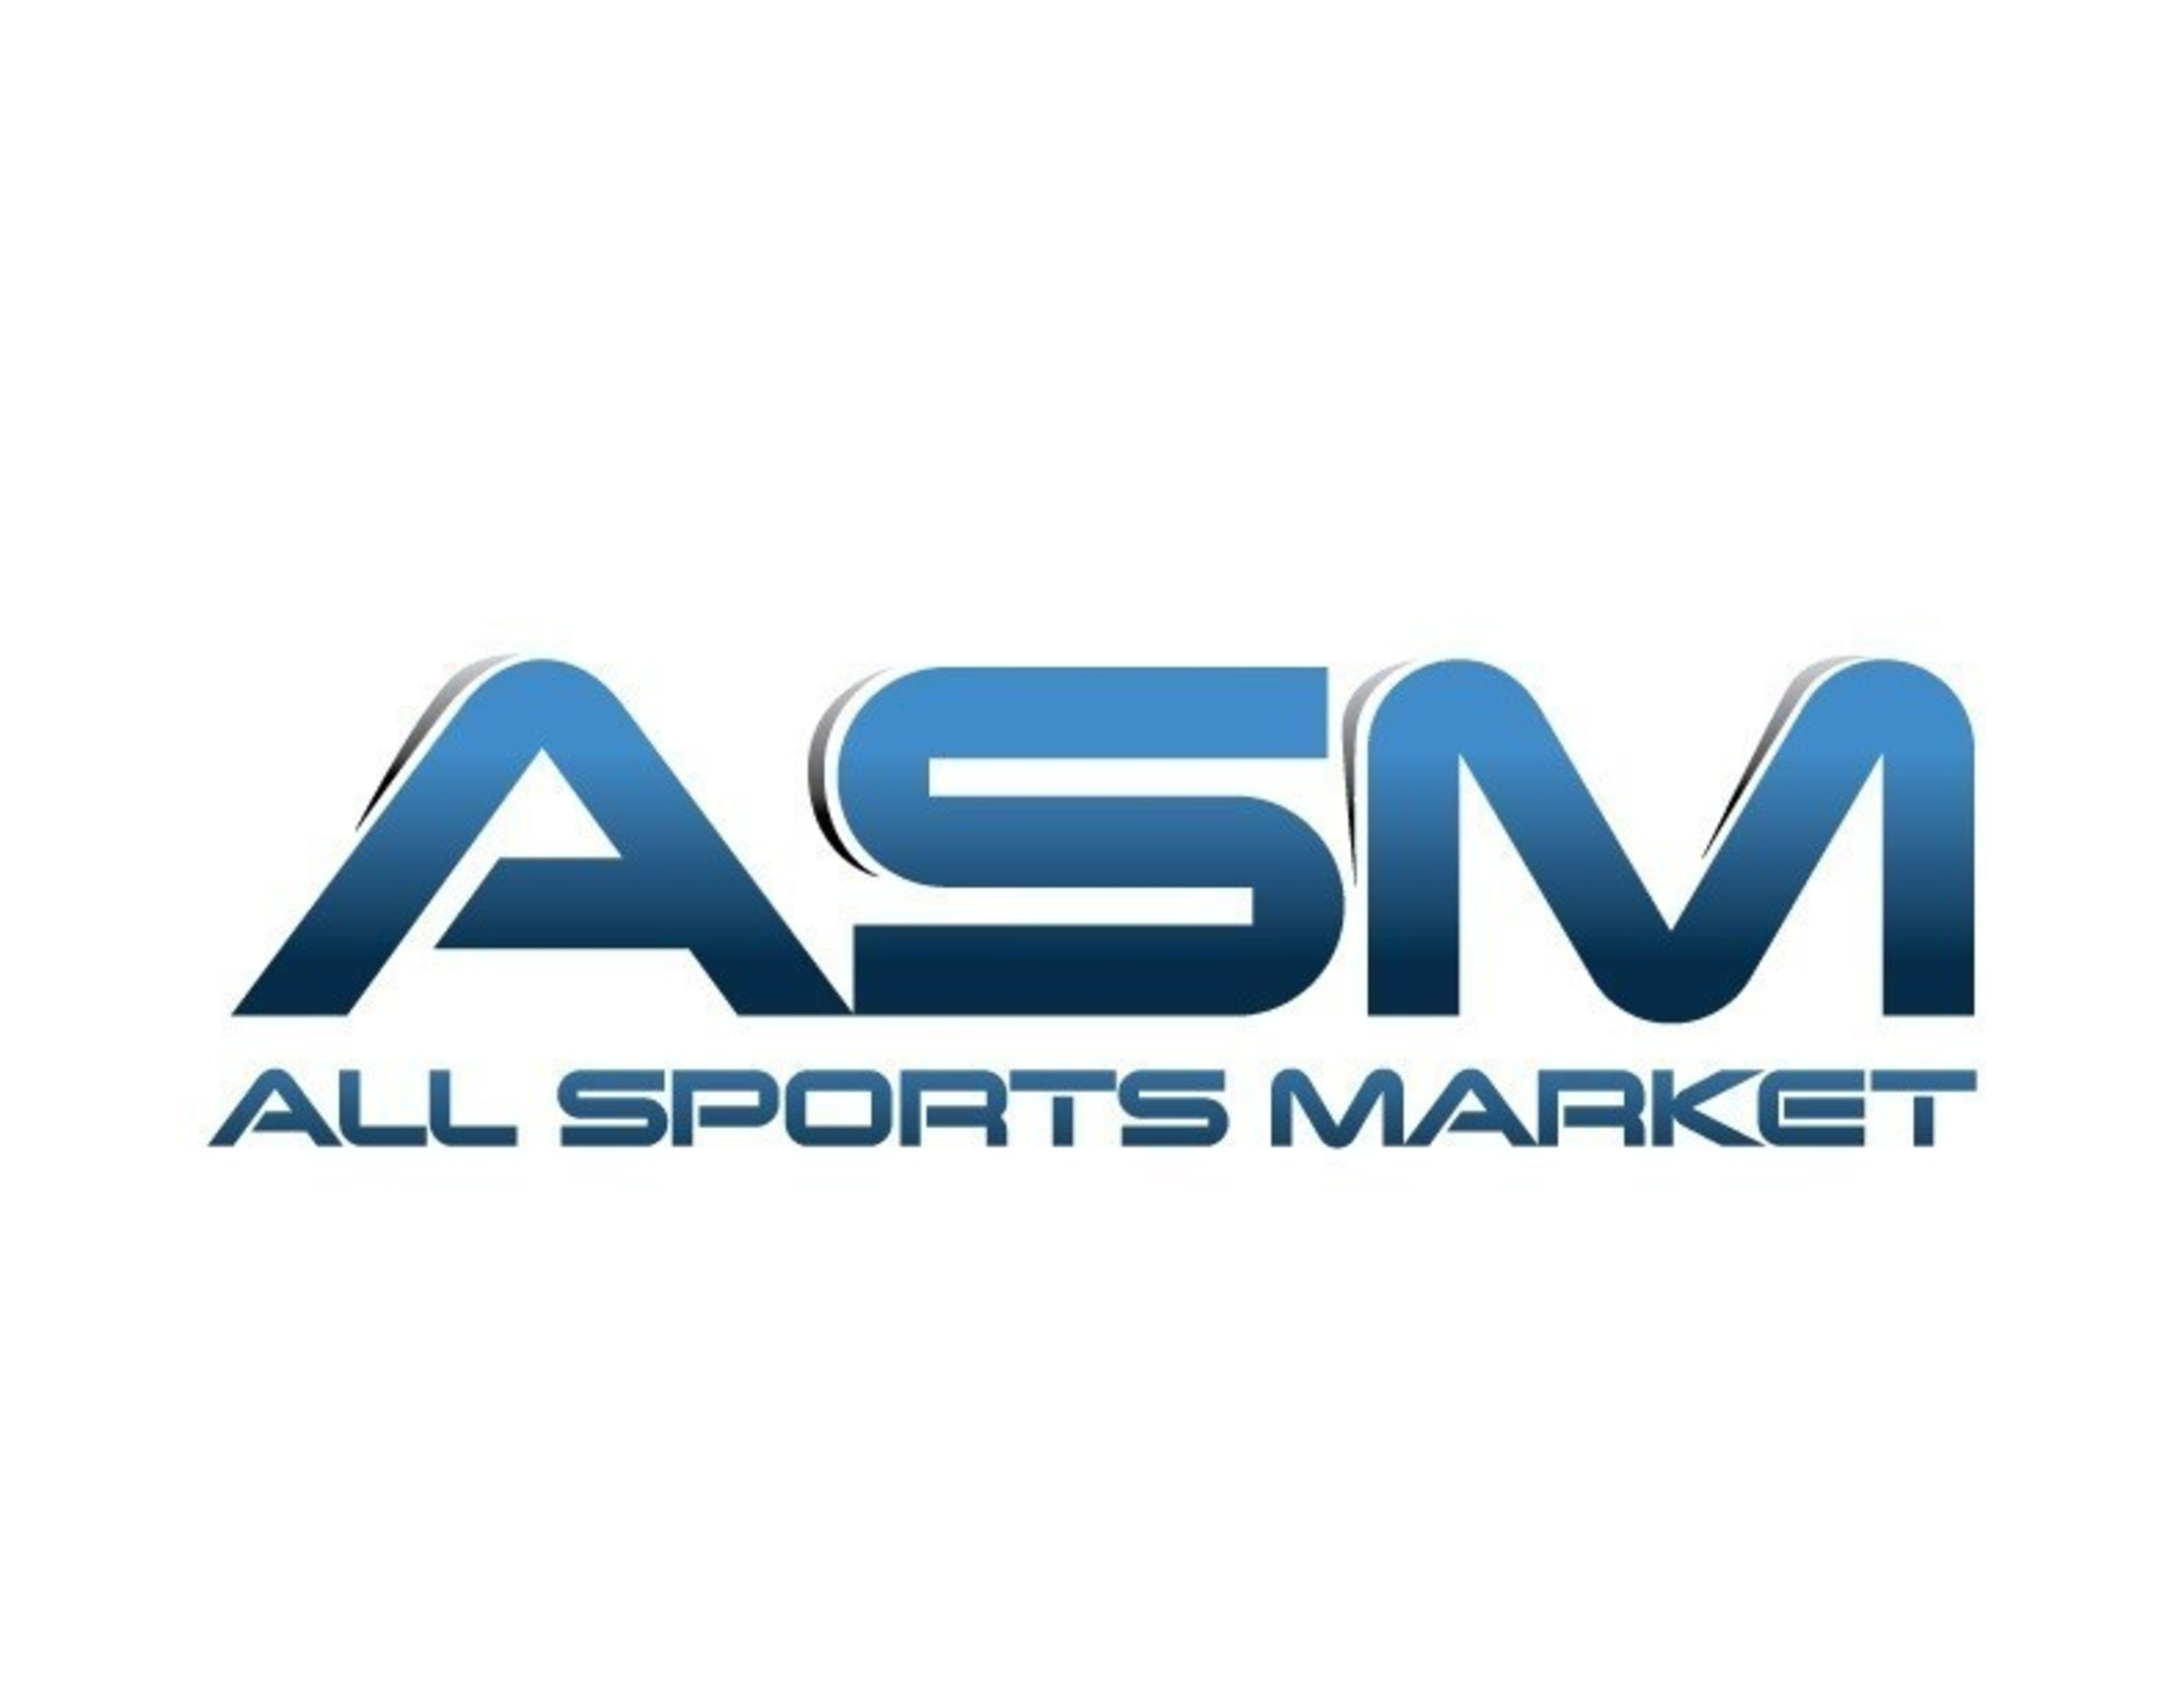 AllSportsMarket - Stop Betting. Start Investing.